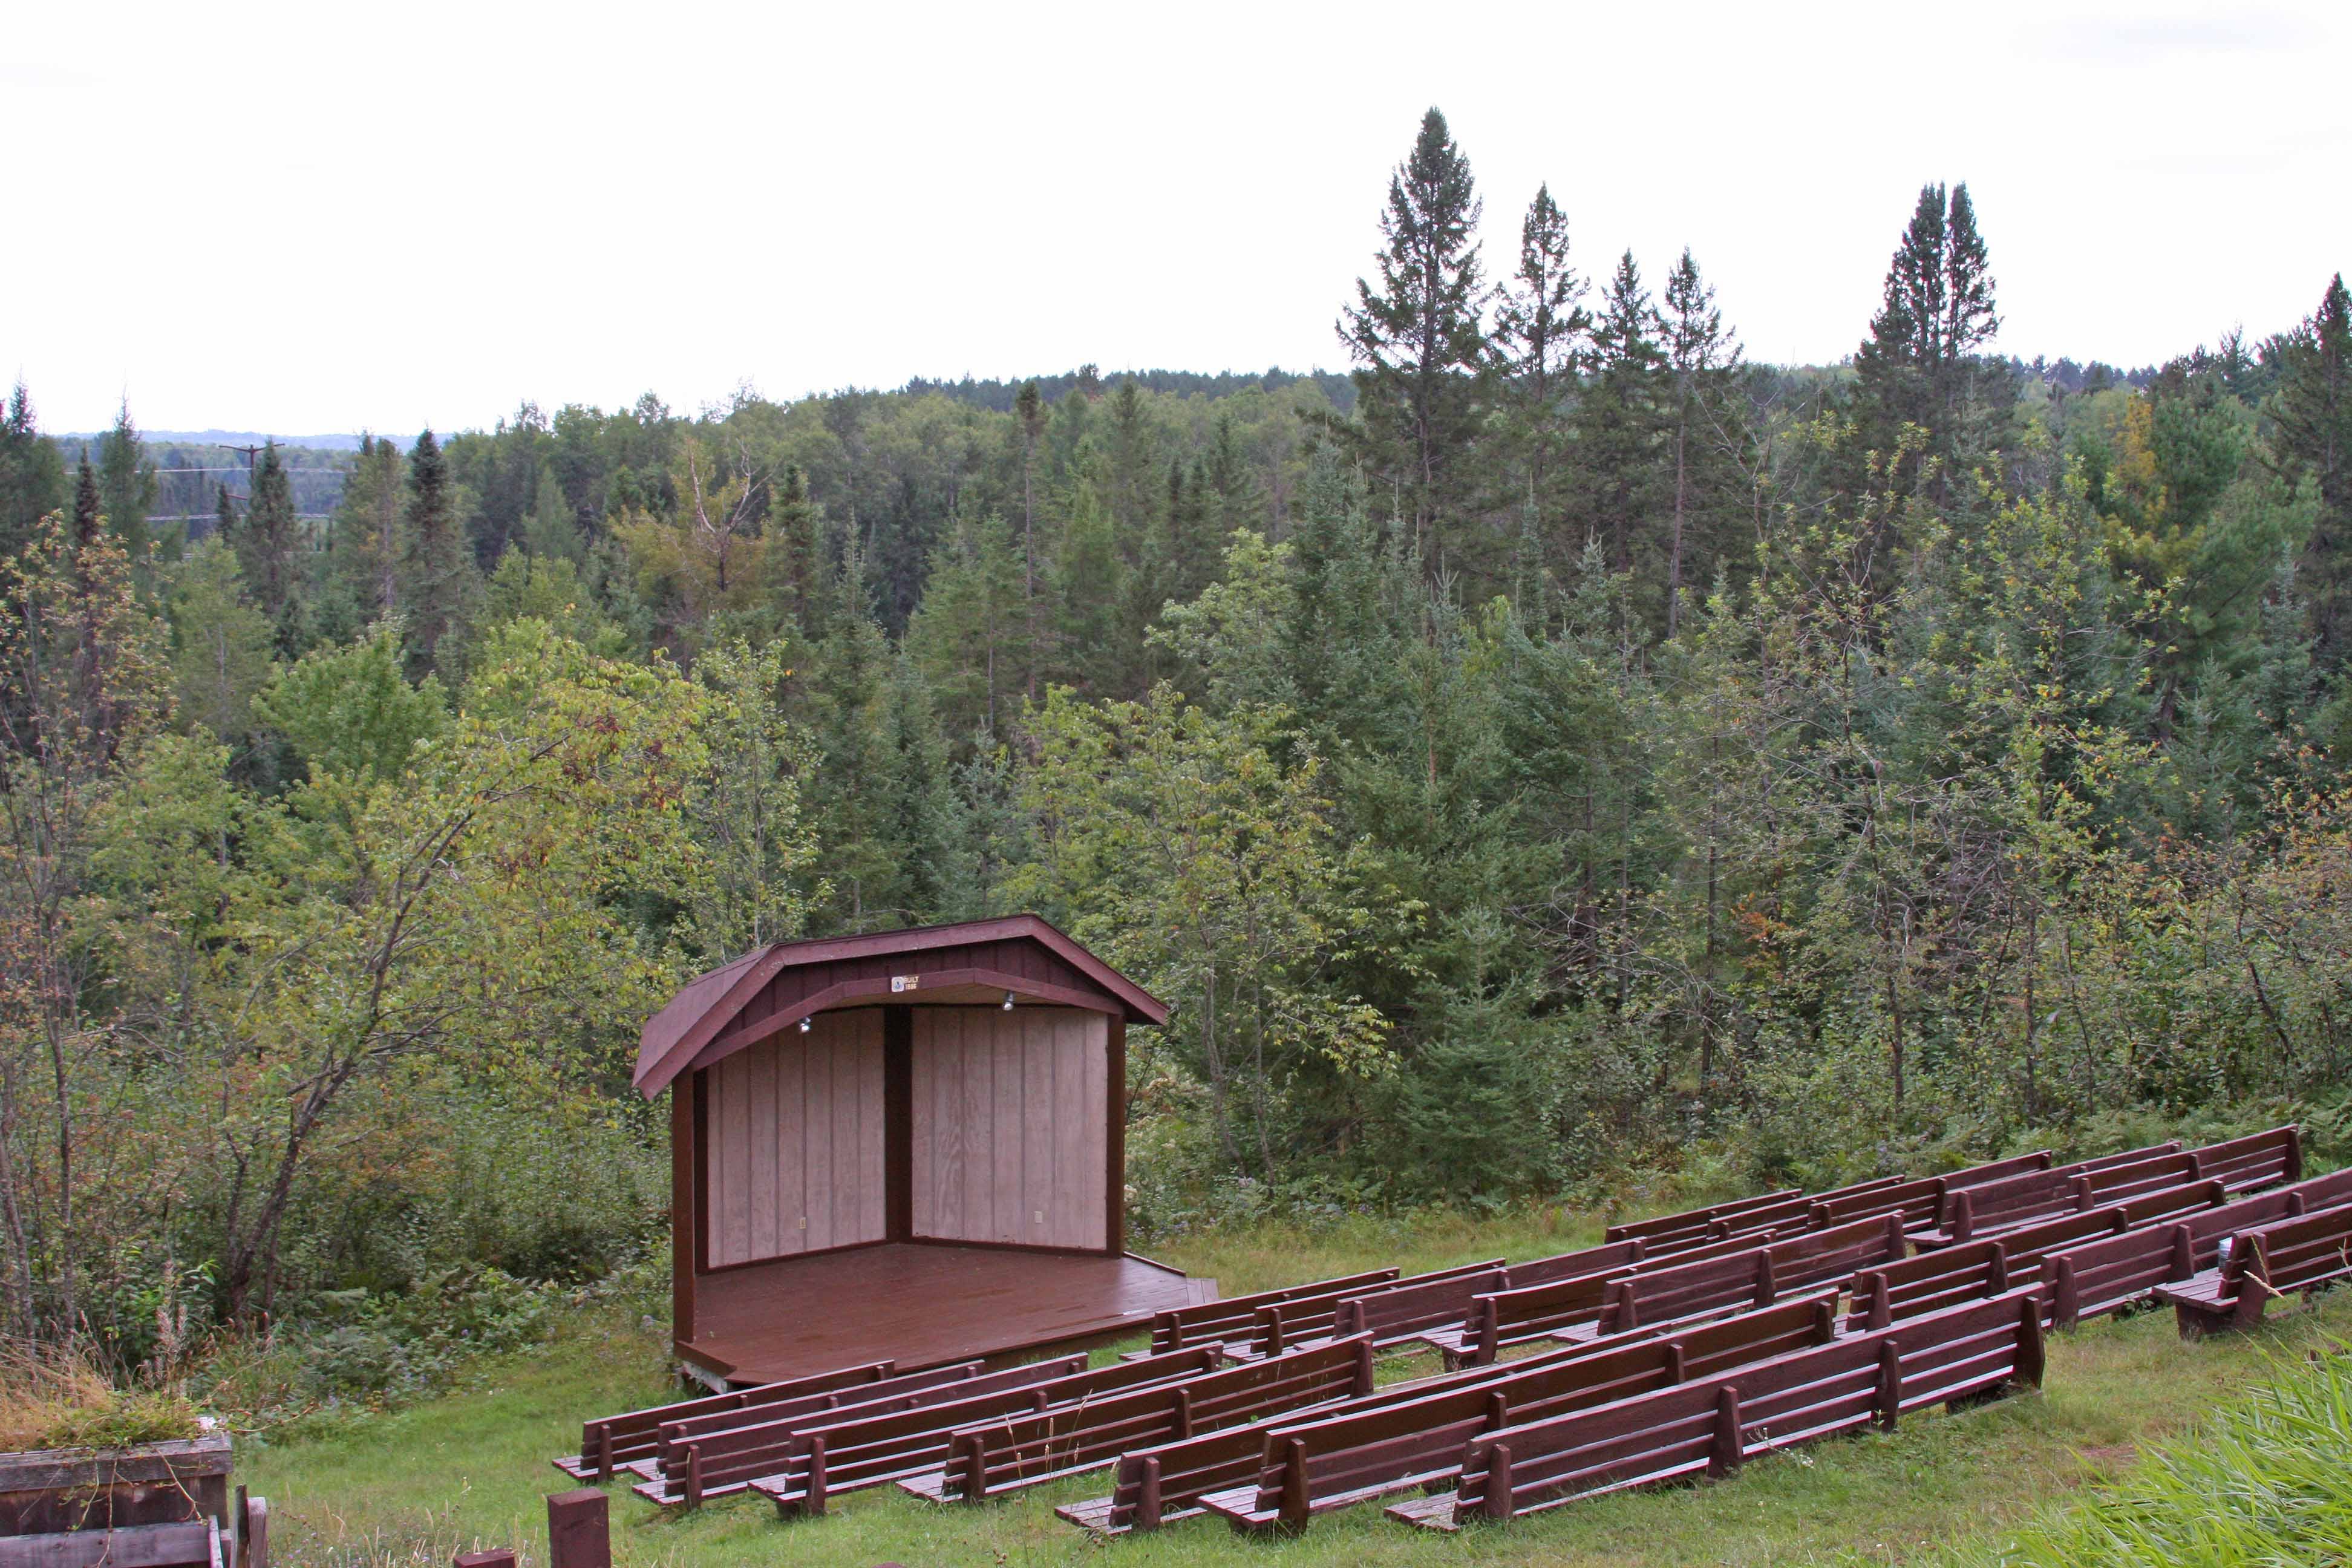 Treehaven Outdoor Ampitheater